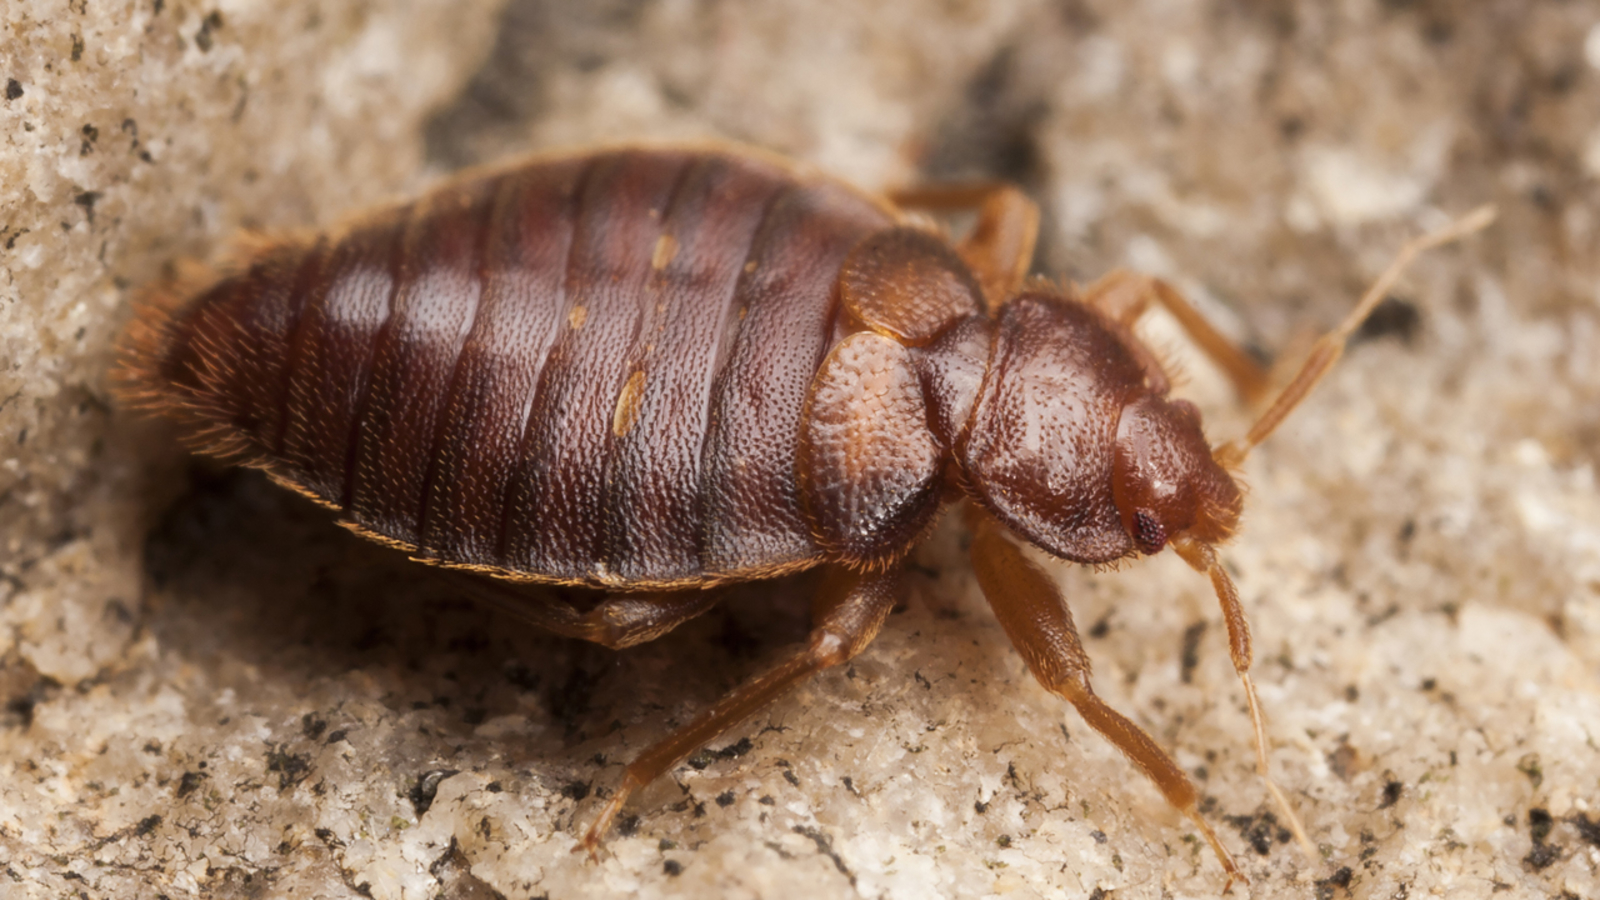 Philadelphia charter school closed Thursday due to bed bugs, officials say